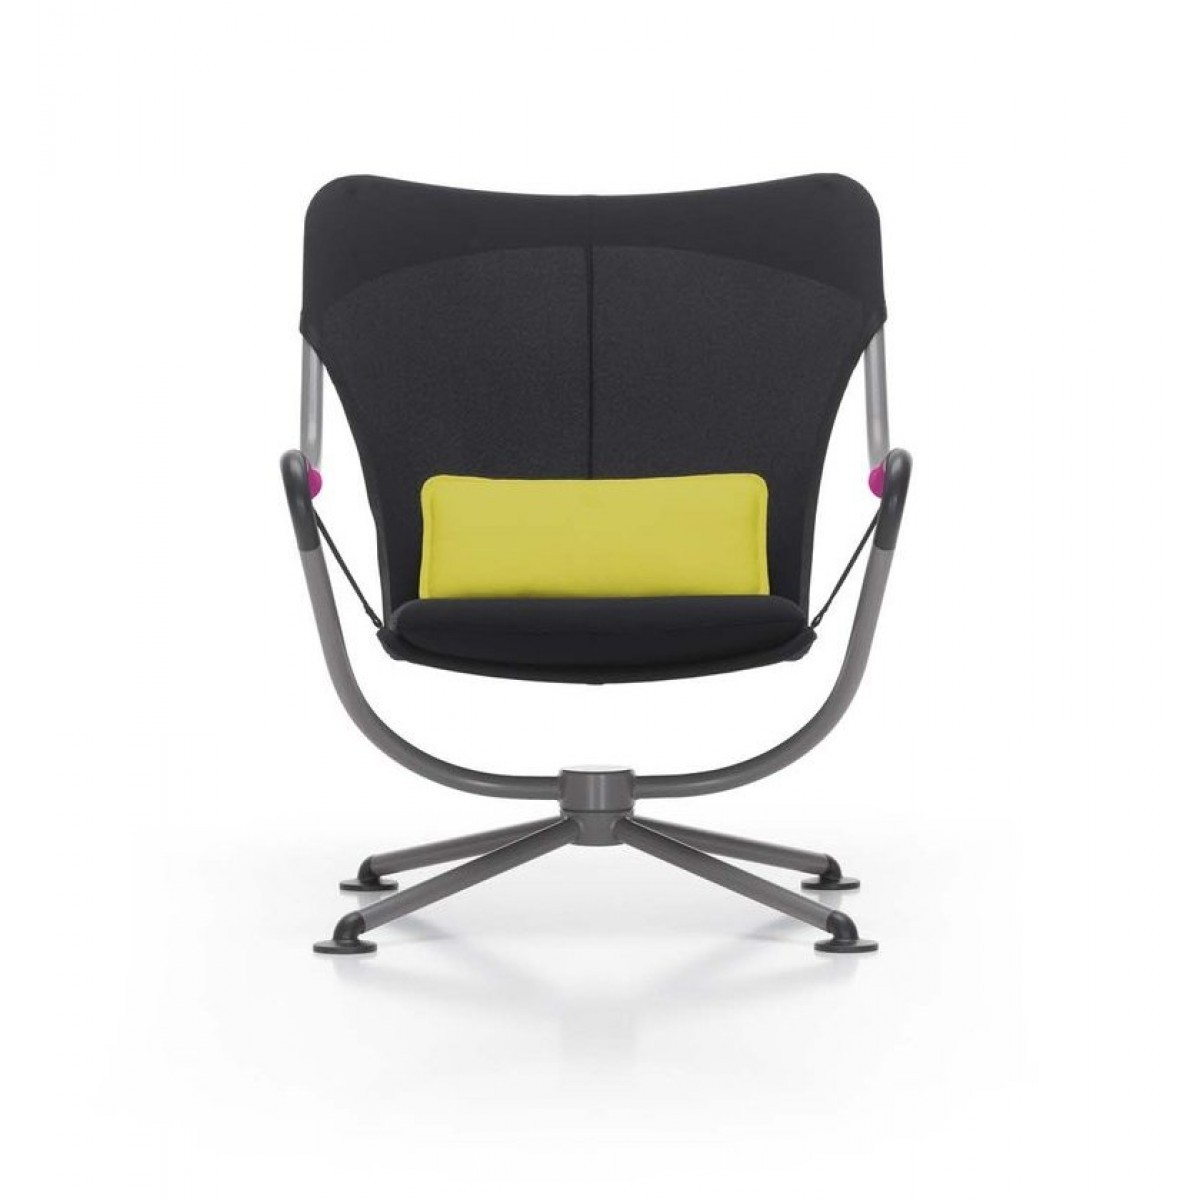 Knight Rider Bettwäsche Vitra Waver Sessel Von Goodform Ch